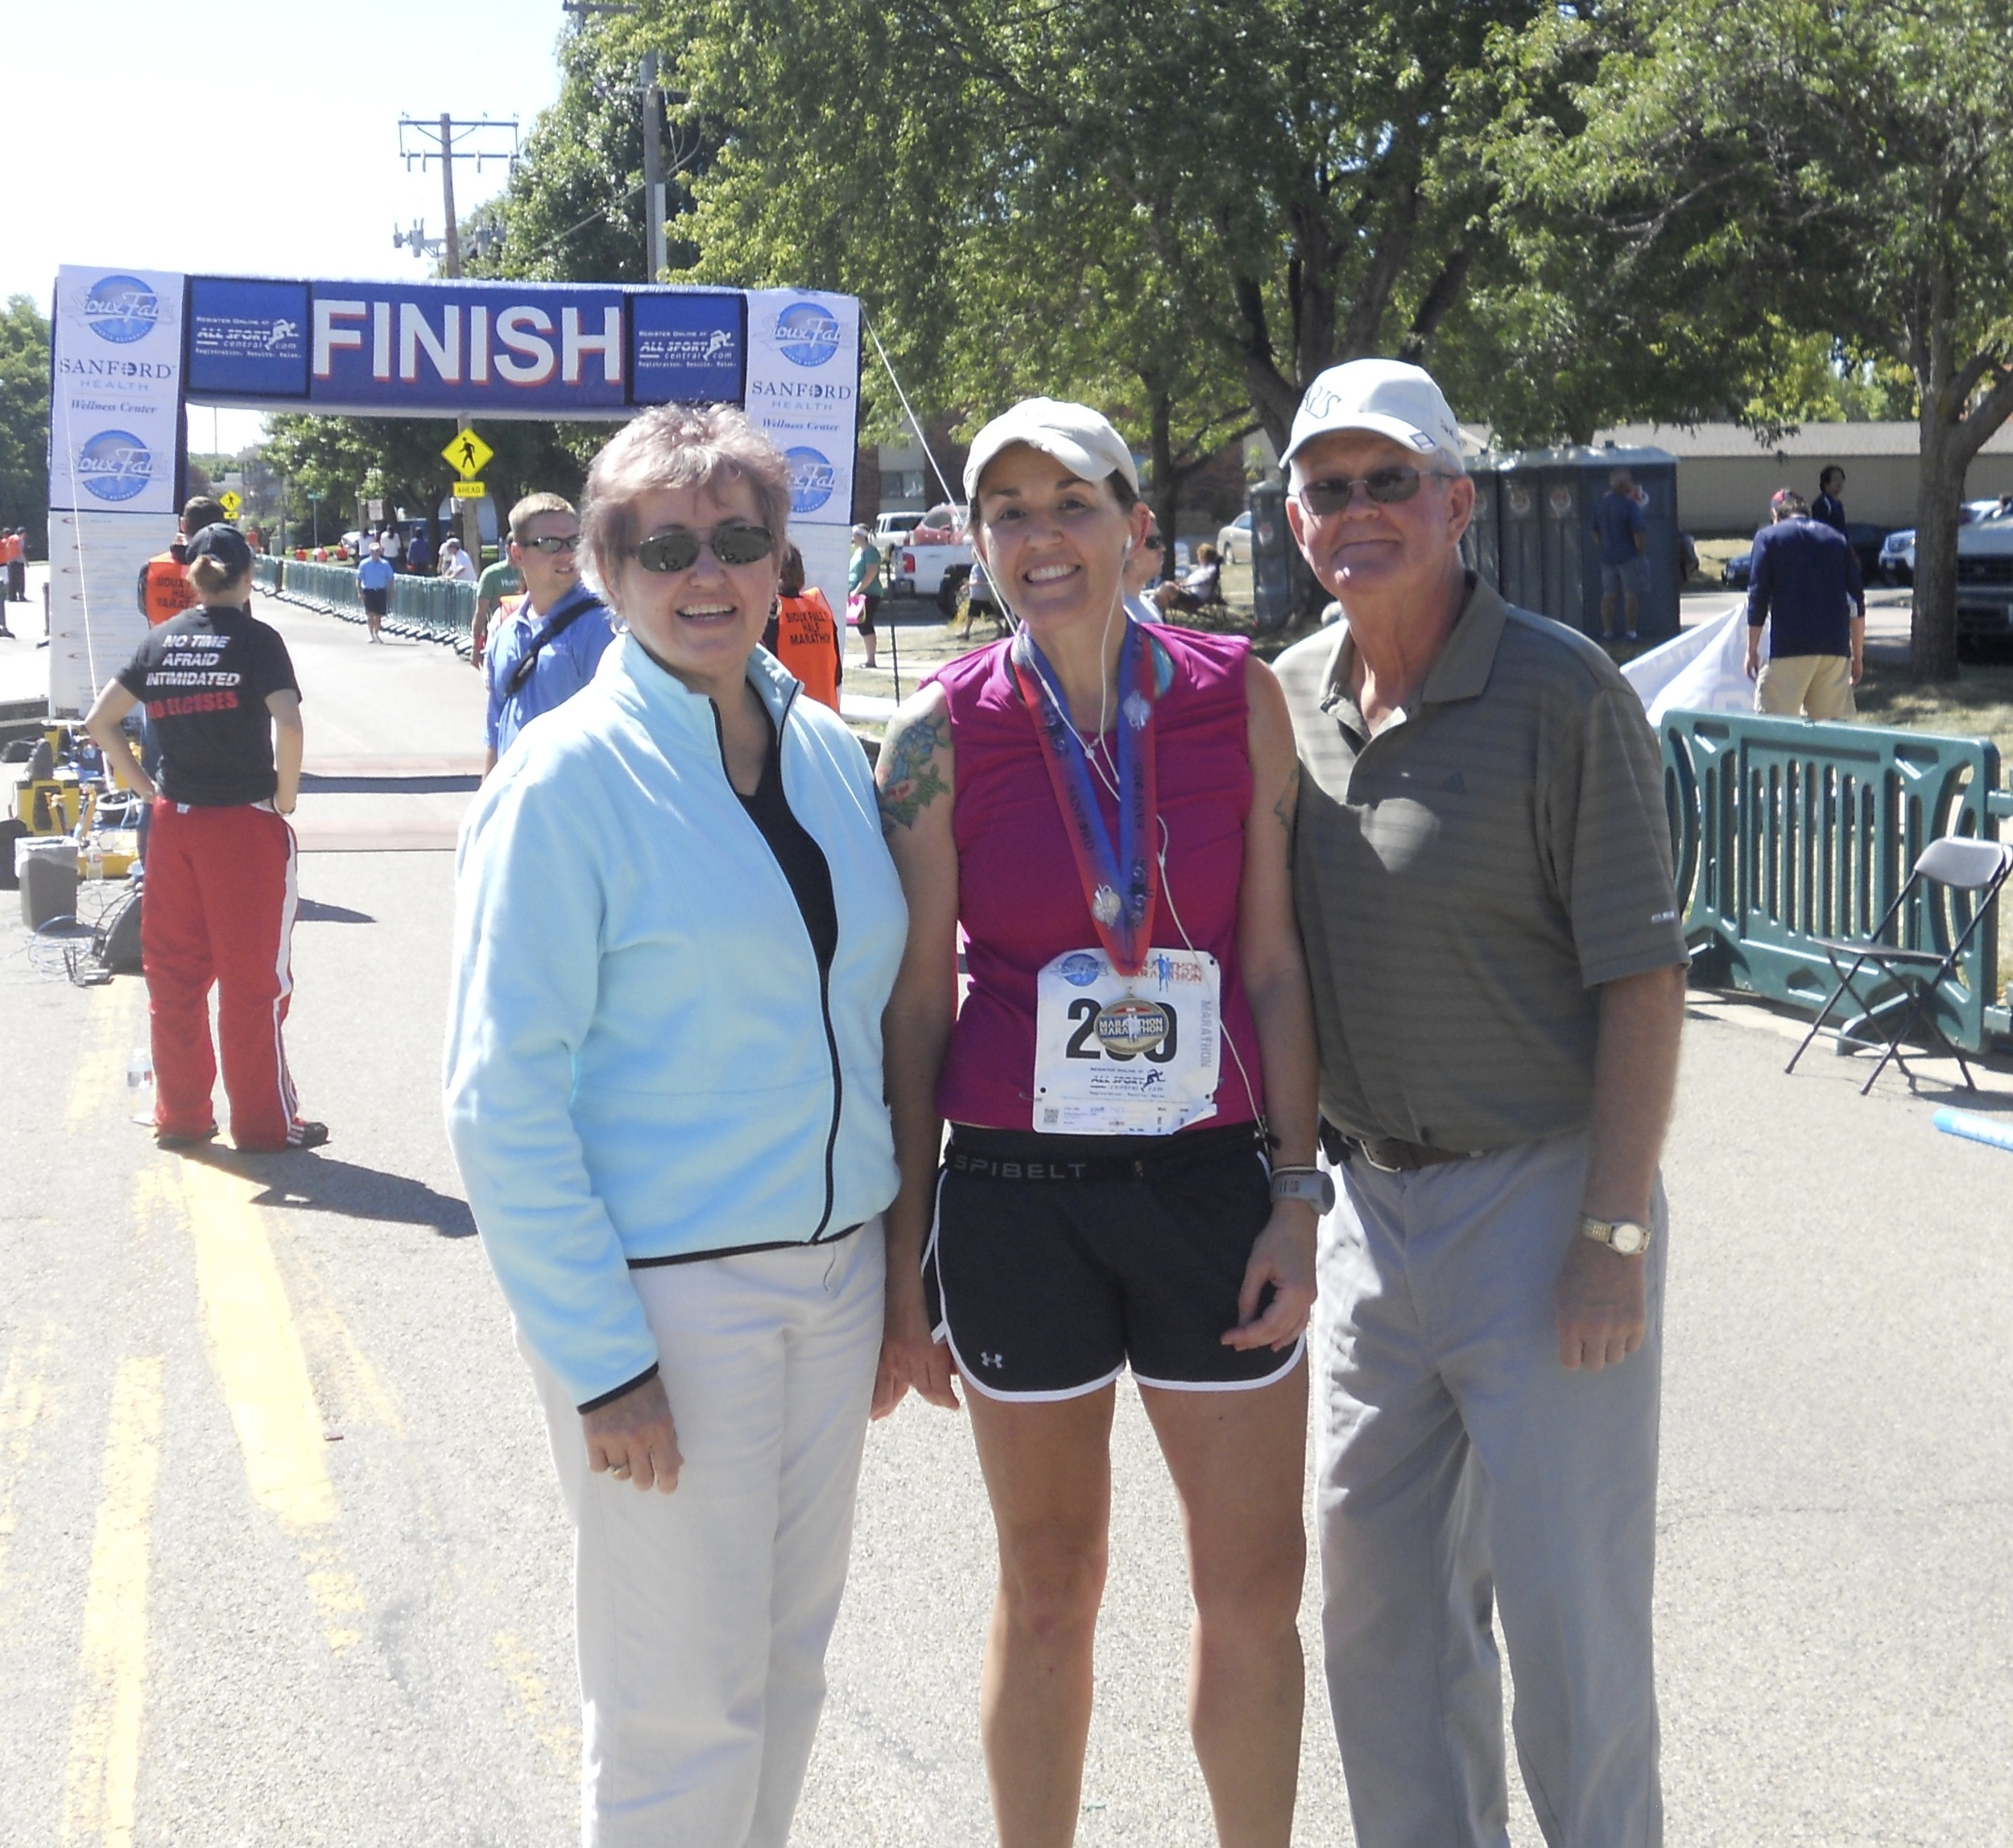 I'm slower than Christmas, but they waited for me at the finish of my first marathon. #biggestfan